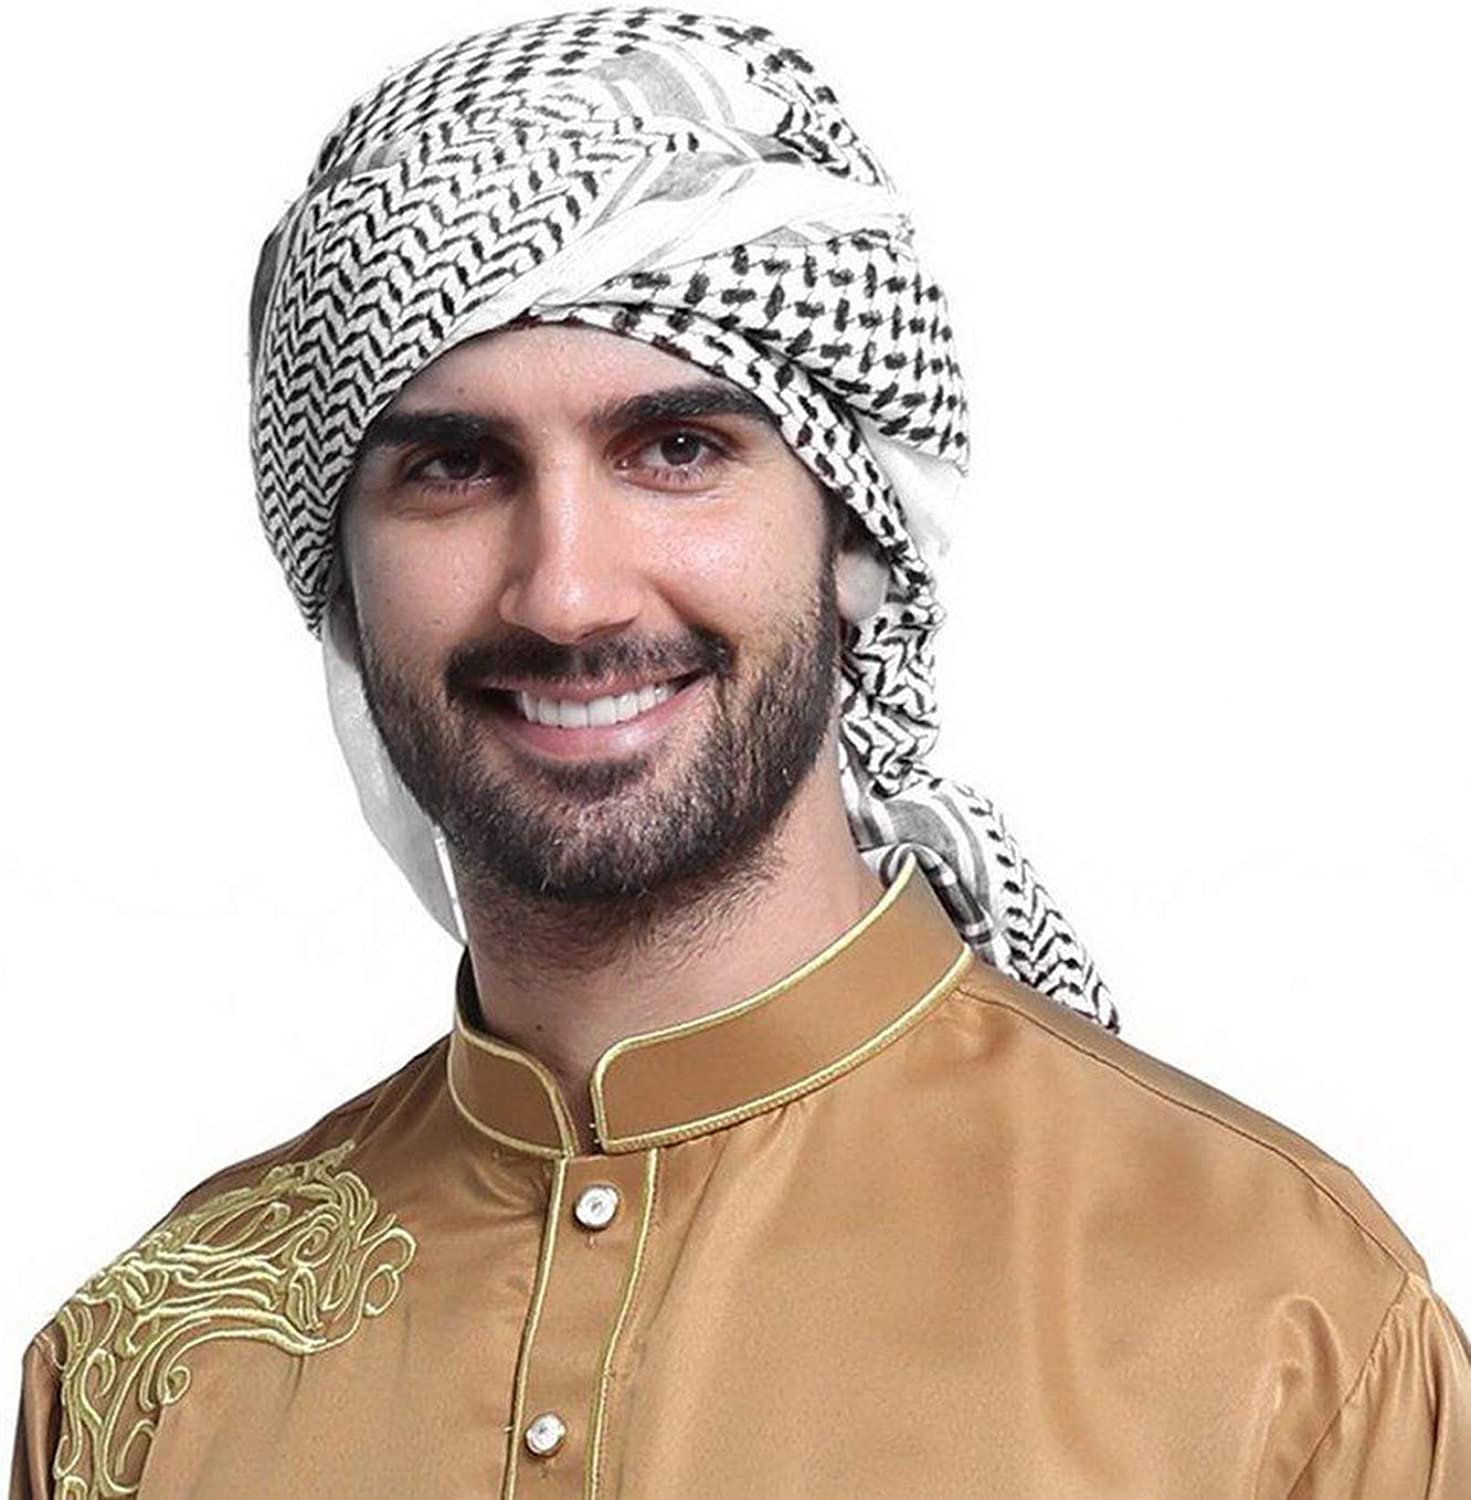 Men Scarf Arab Shemagh Head Scarf Neck Wrap Cottton Palestine Arafat Black At Amazon Men S Clothing Store